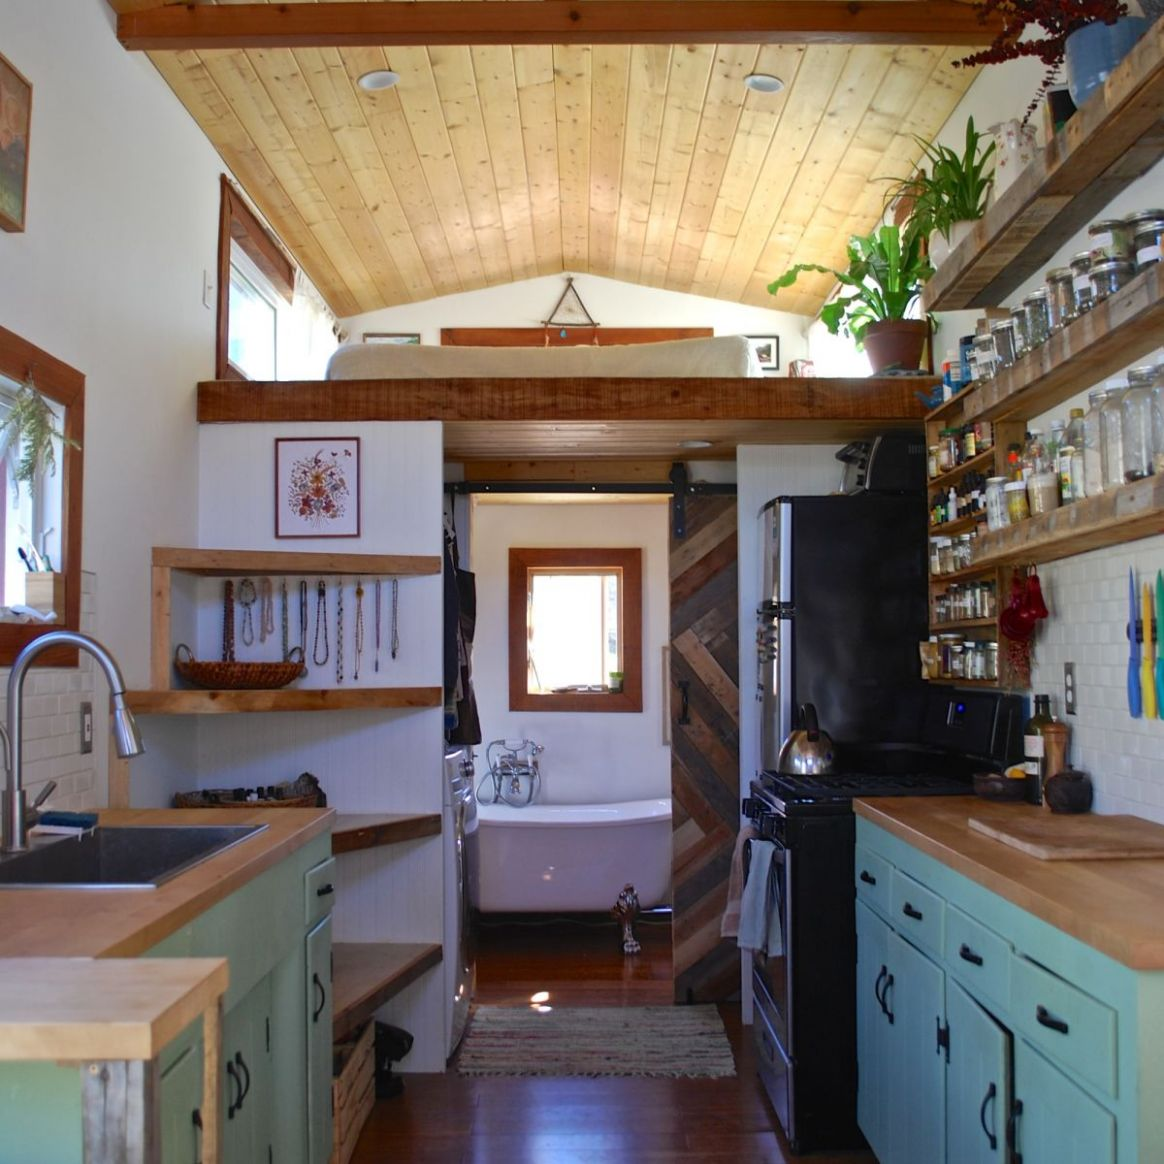 Off-grid Heavenly Tiny House - Now Discounted! - Tiny House for Sale in San  Marcos, California - Tiny House Listings - tiny house for sale california